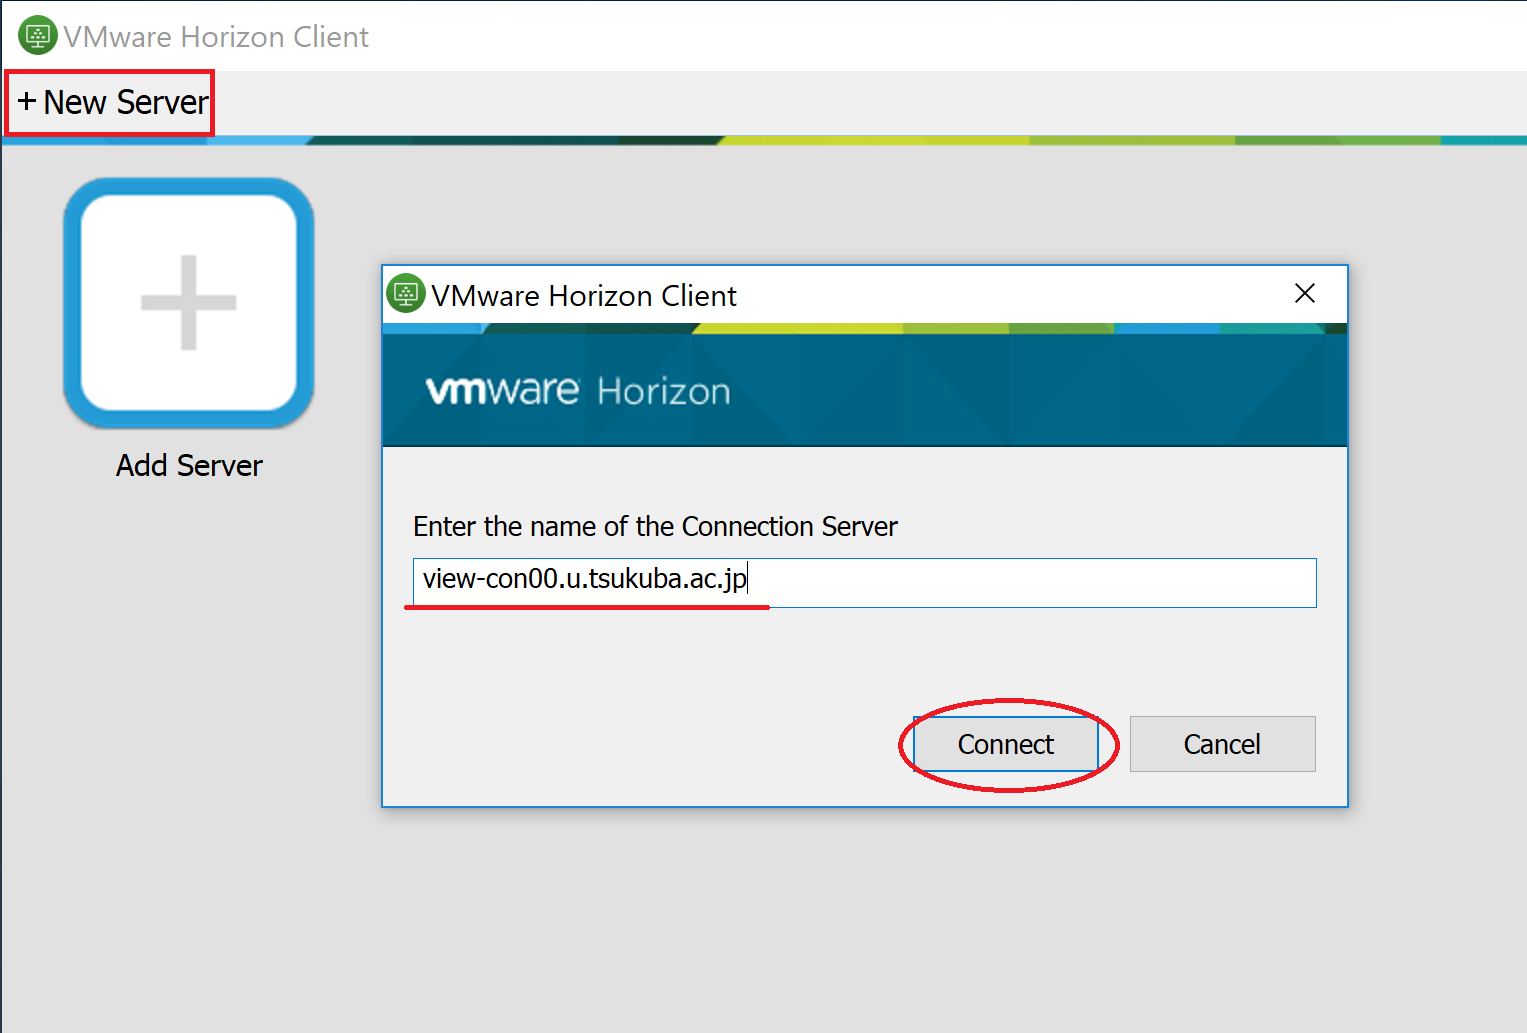 VMware Horizon Client - New Server